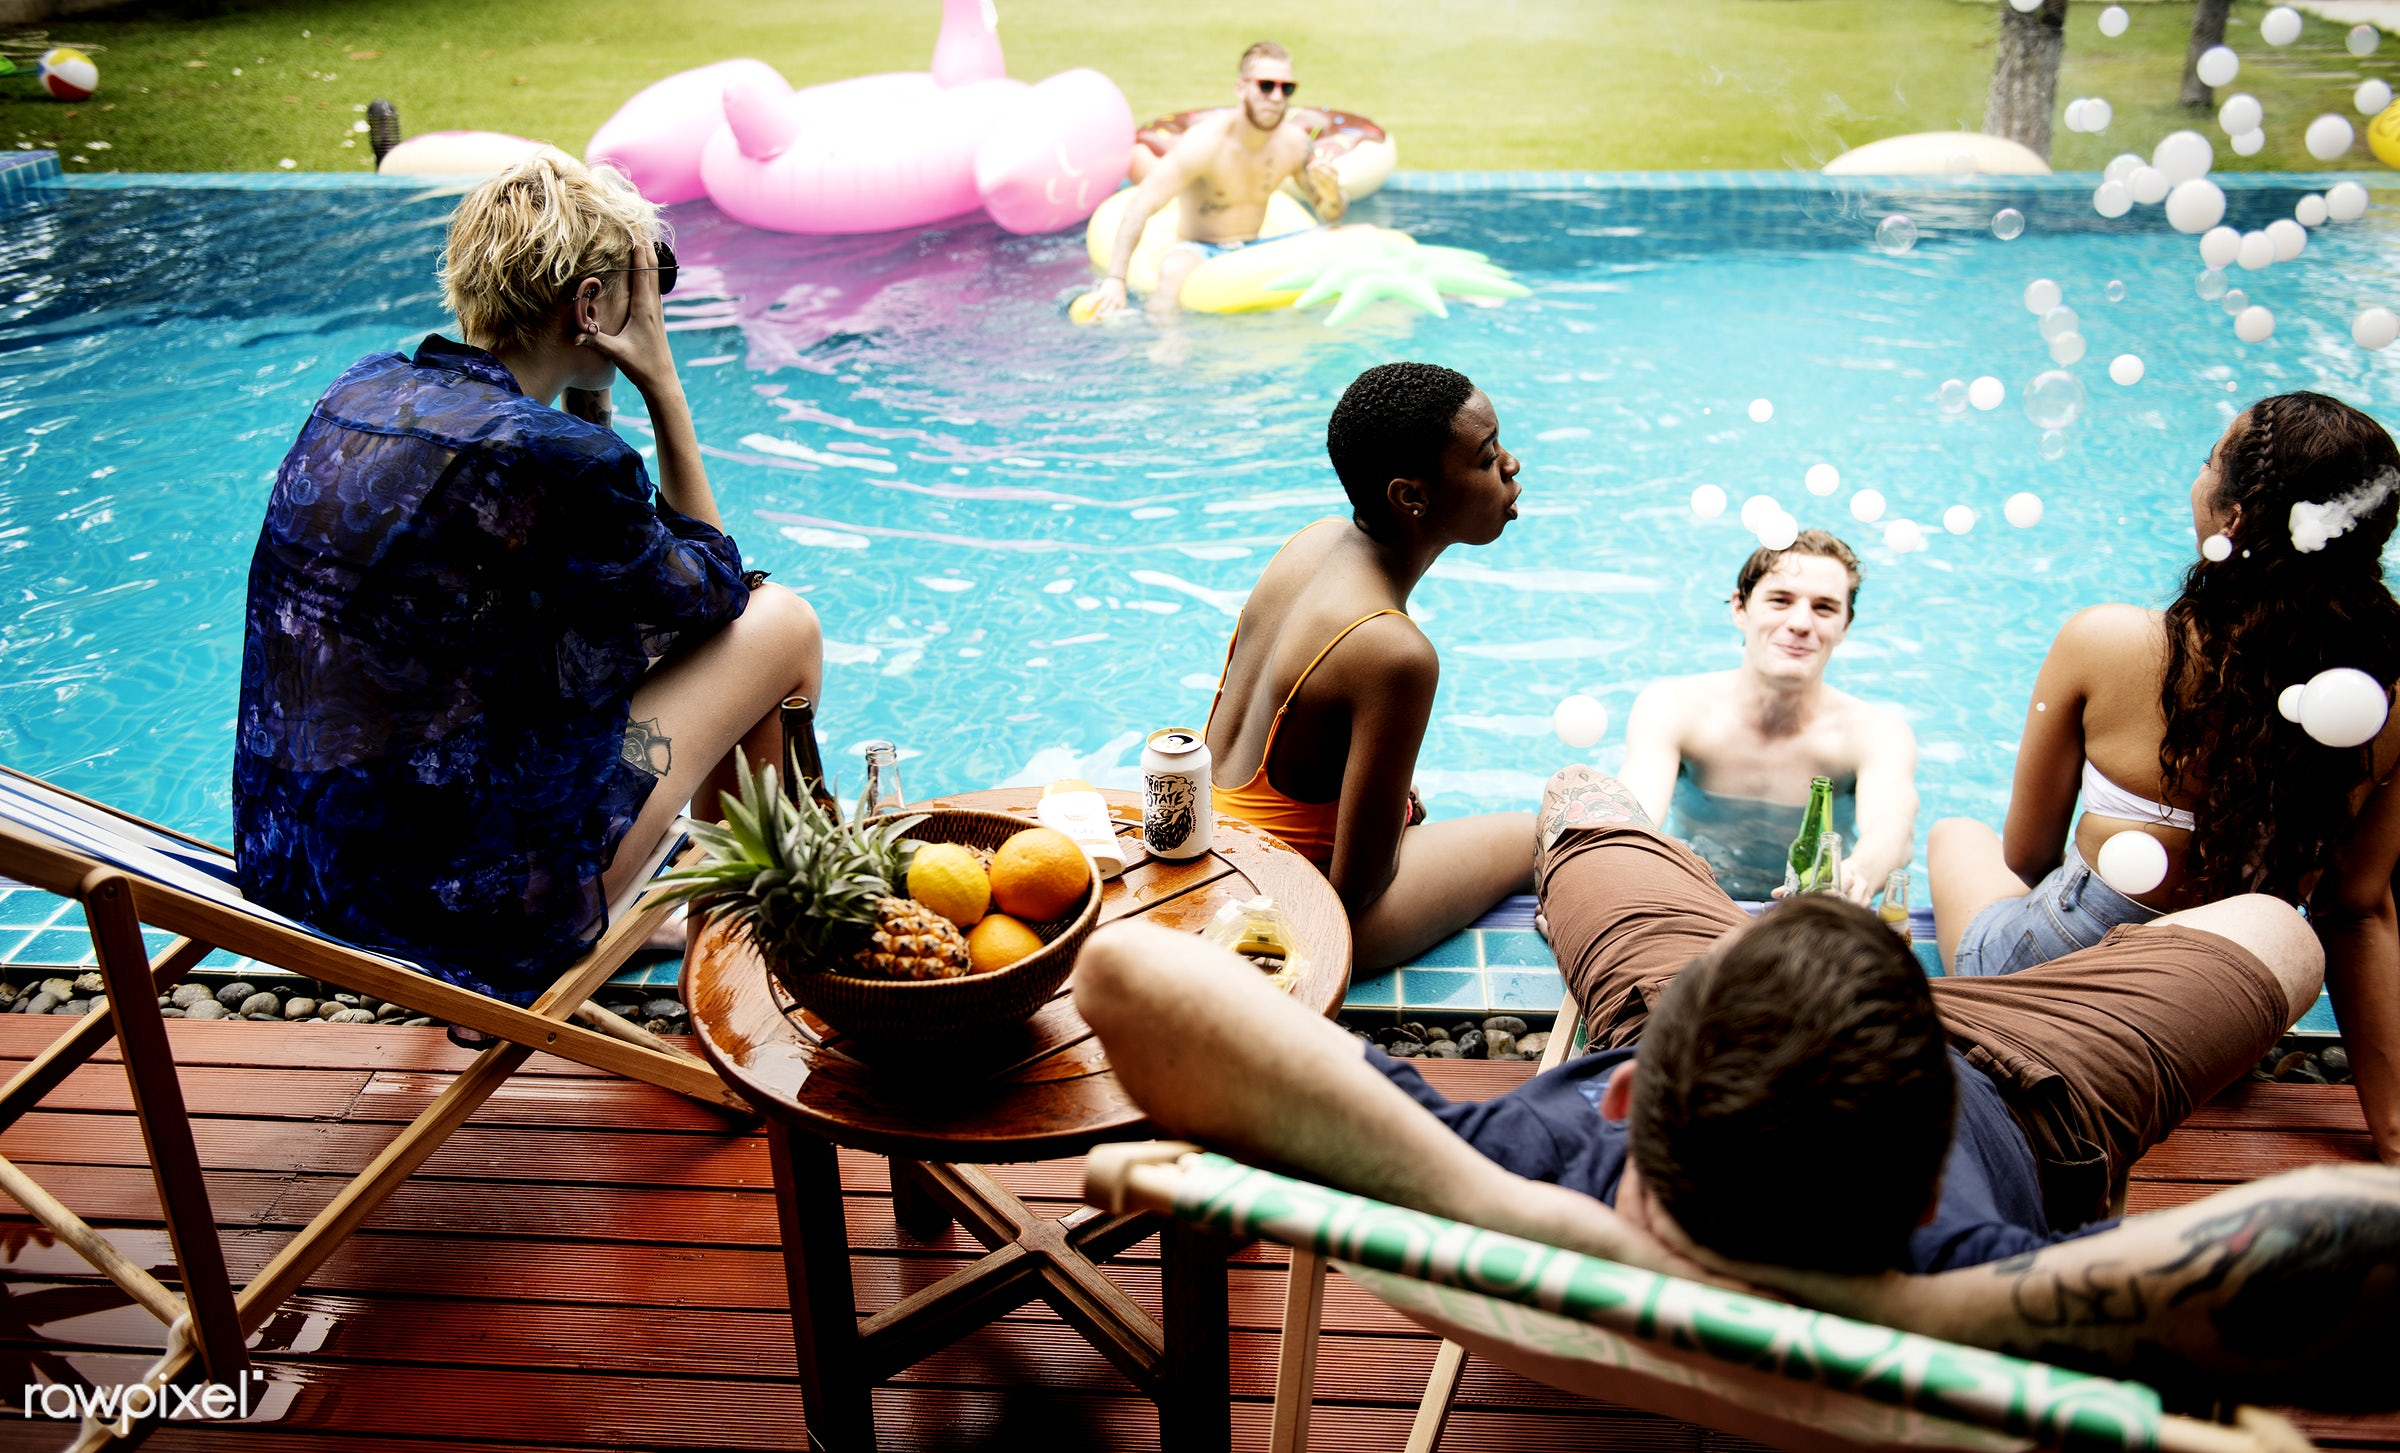 tattooed, diverse, relax, house, party, people, caucasian, asian, friends, pool, inflatables, men, tubes, cheerful, talk,...